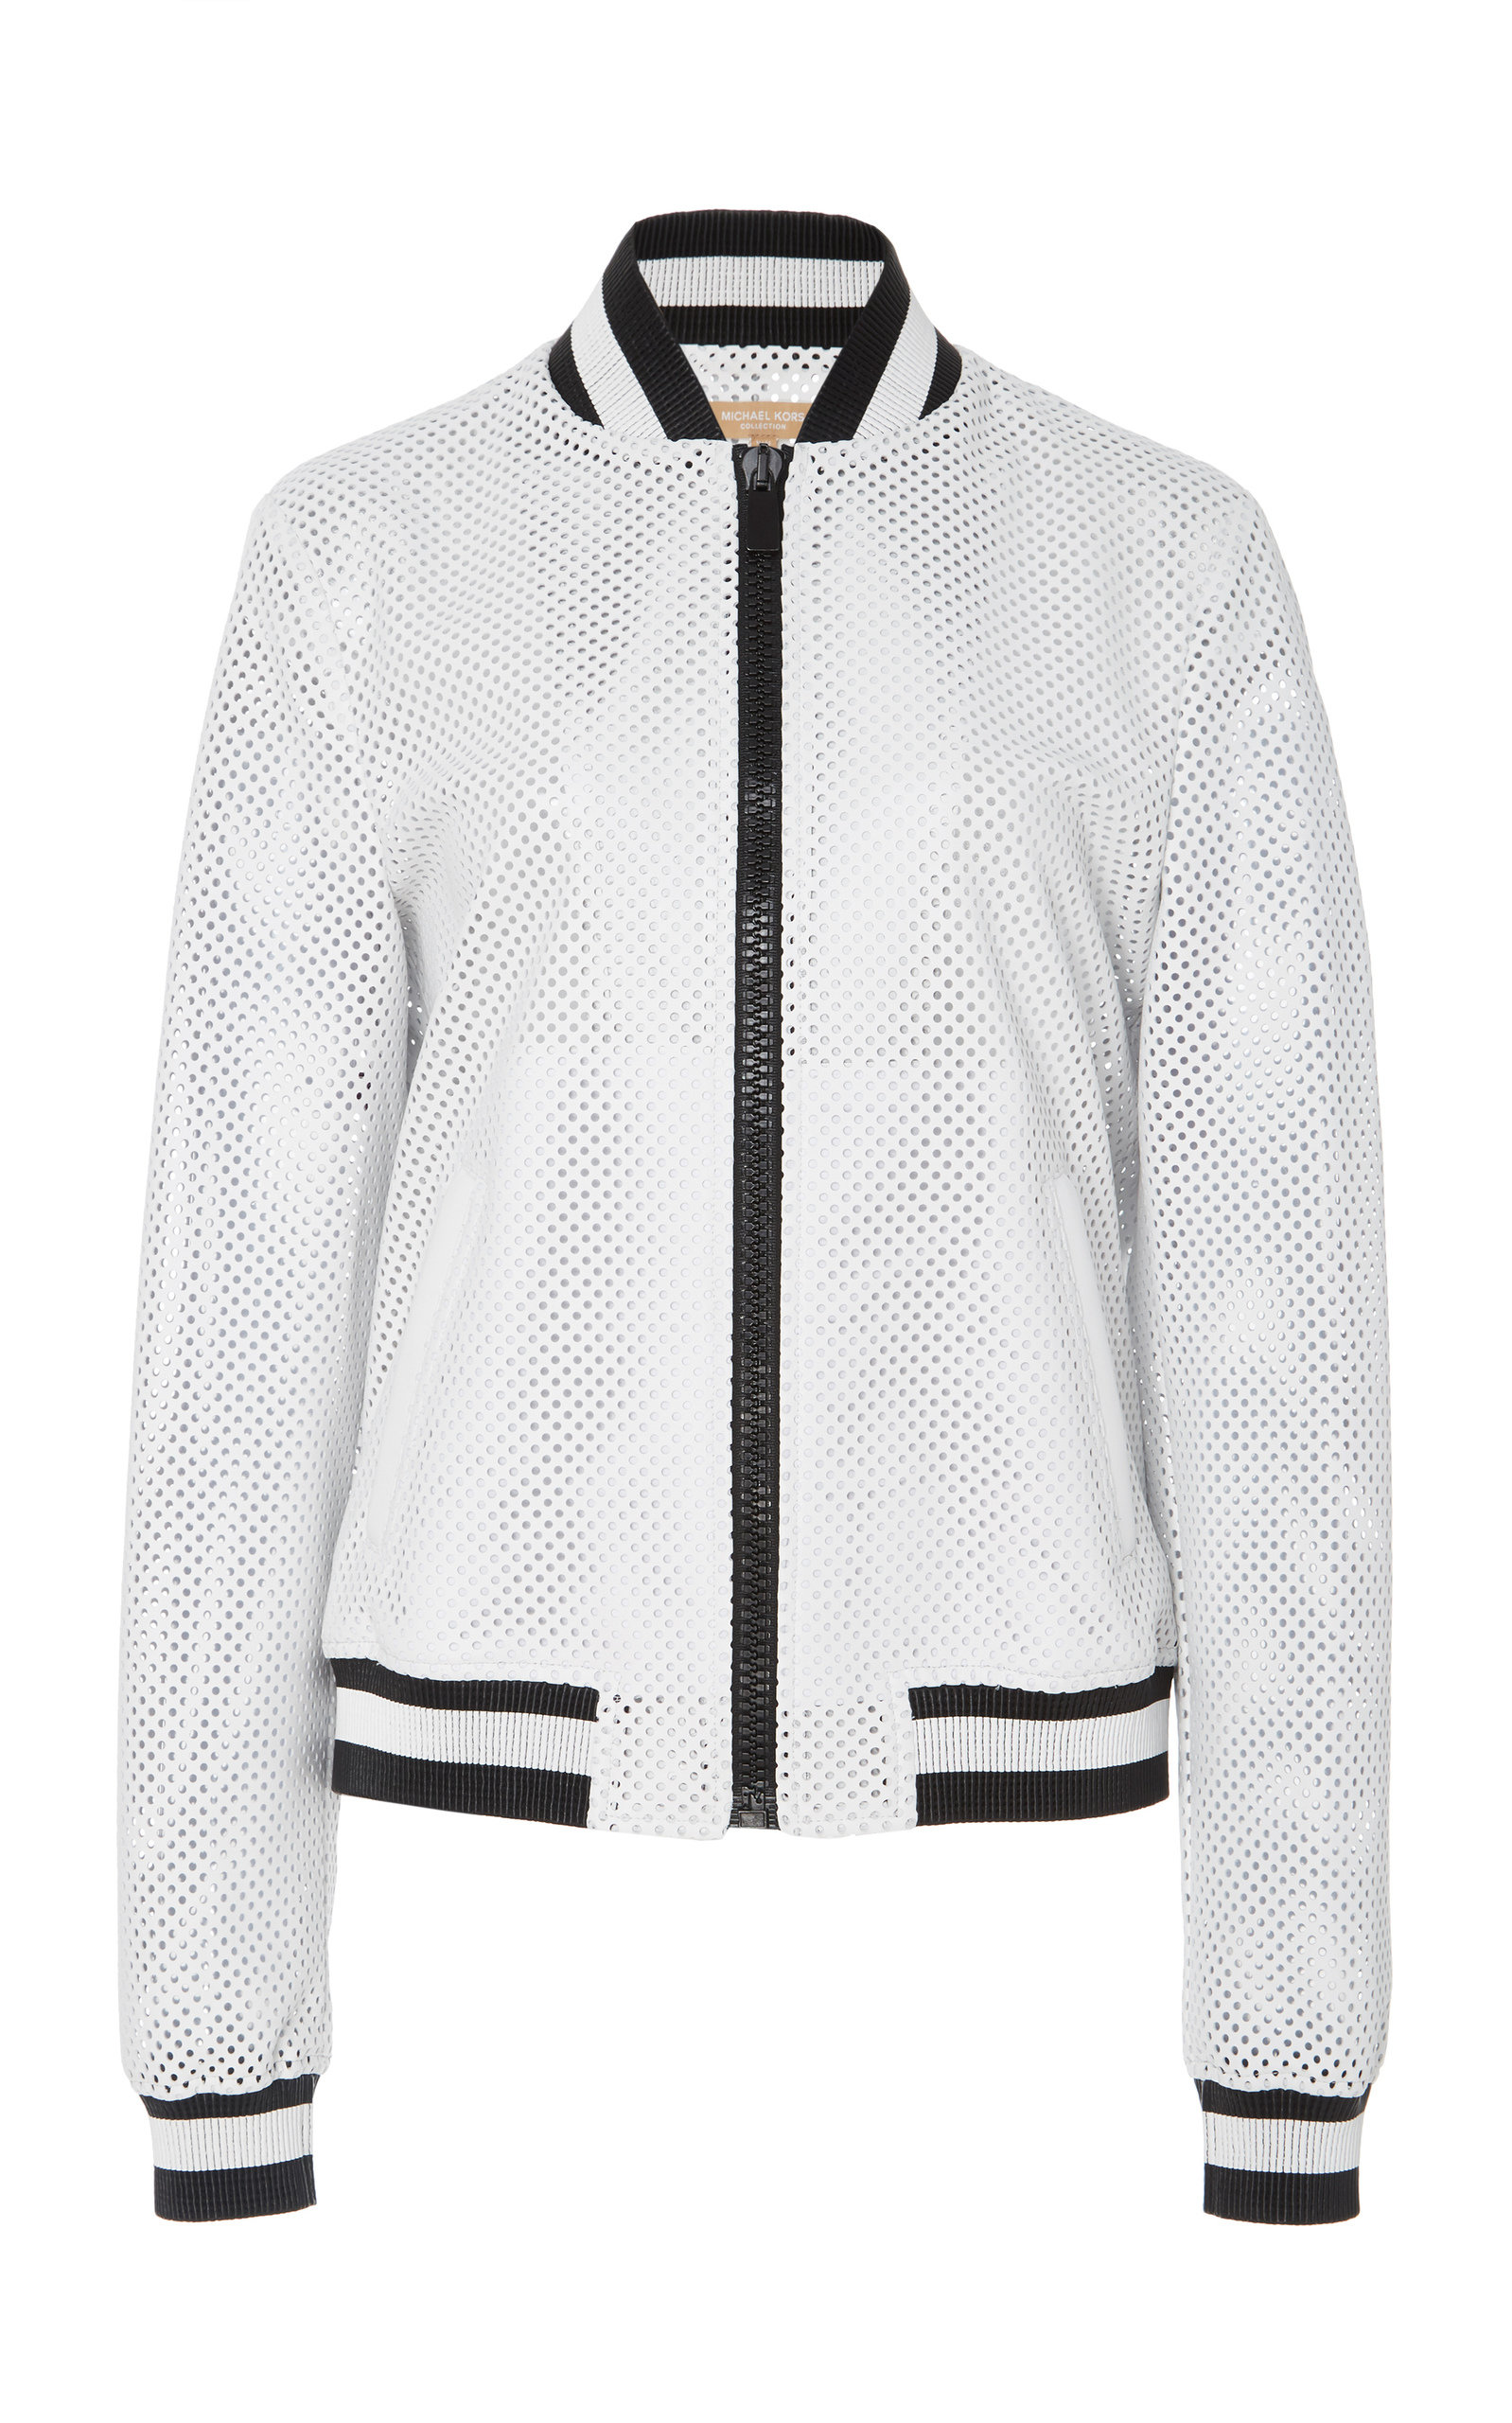 89a4edd03949 Michael Kors CollectionStriped Perforated Leather Bomber Jacket. CLOSE.  Loading